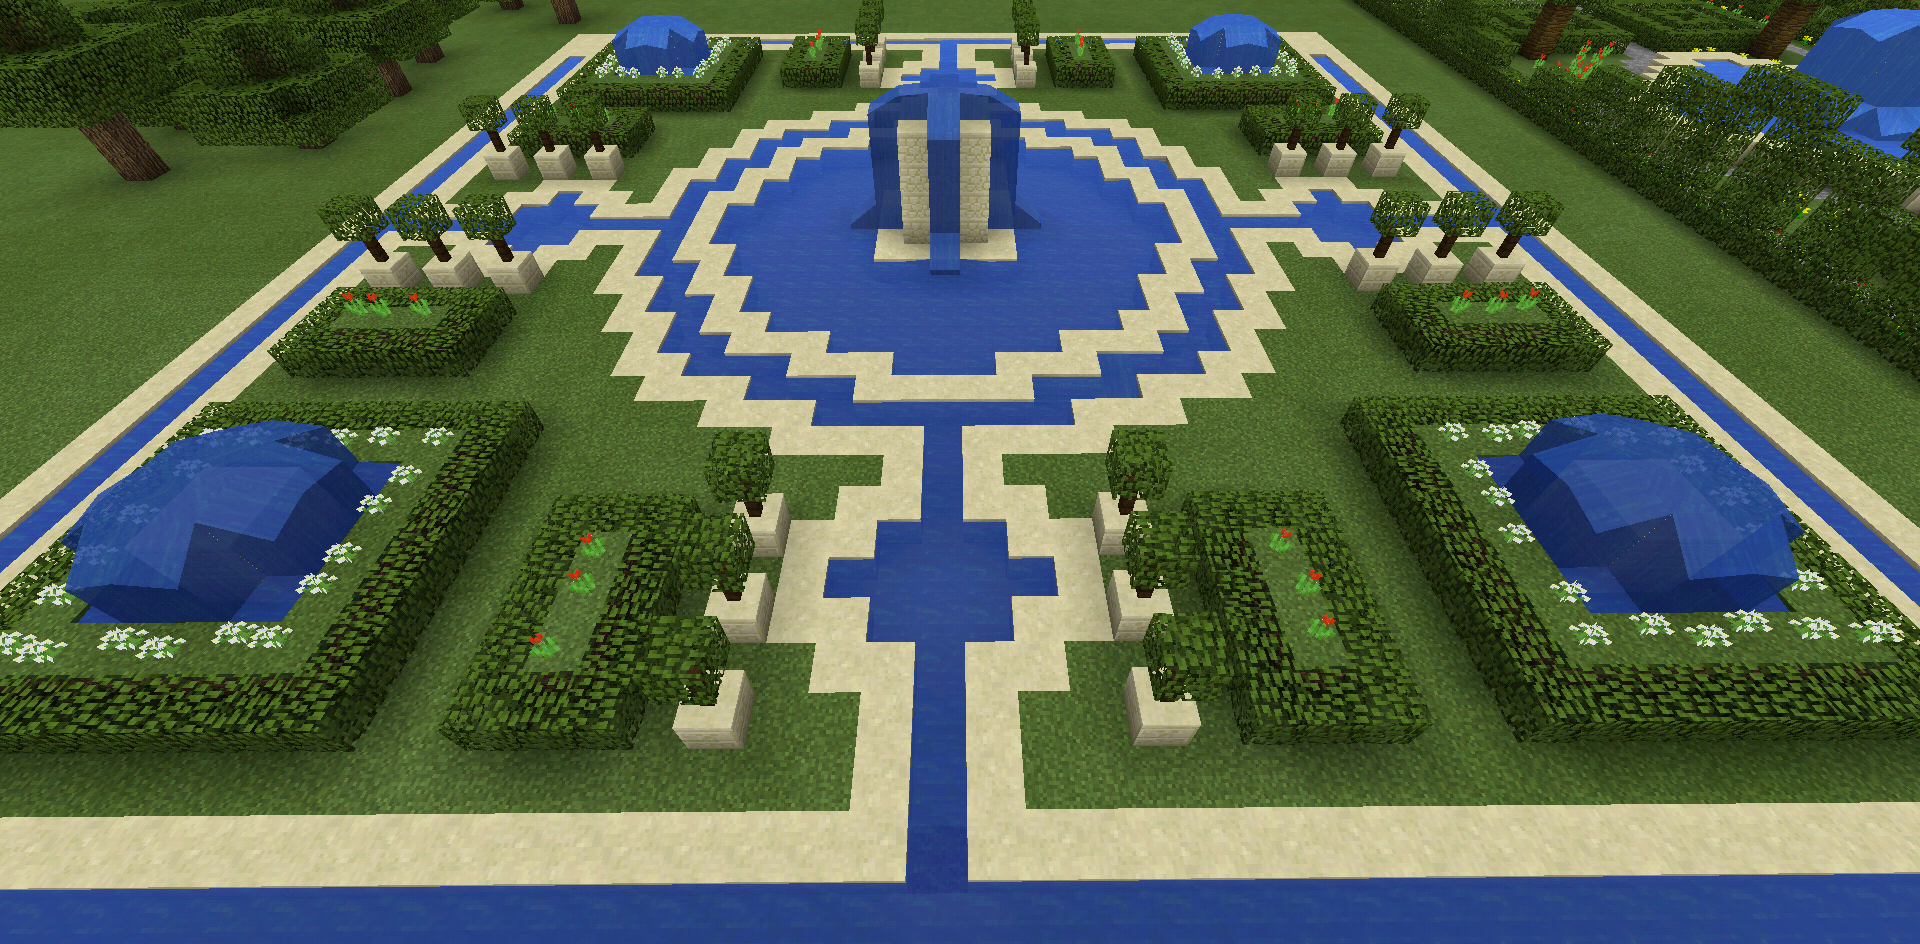 Minecraft fountain garden maze minecraft creations pinterest fountain garden minecraft - Minecraft garden designs ...